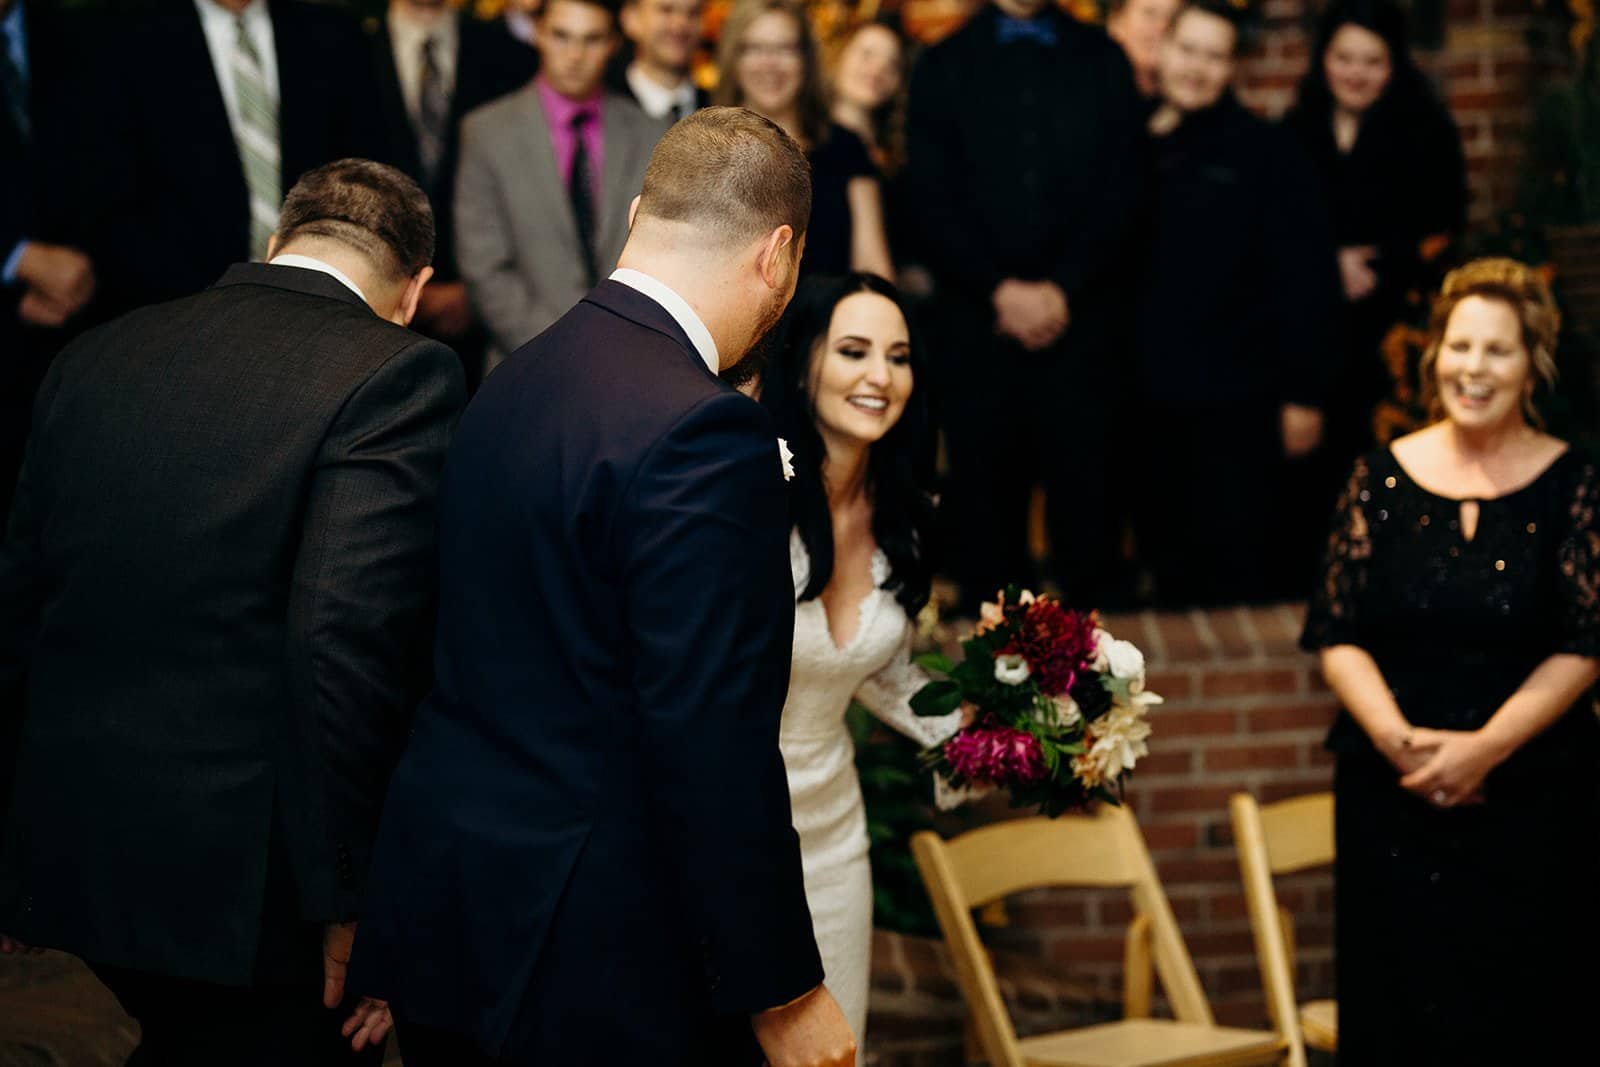 father of the bride gives daughter away